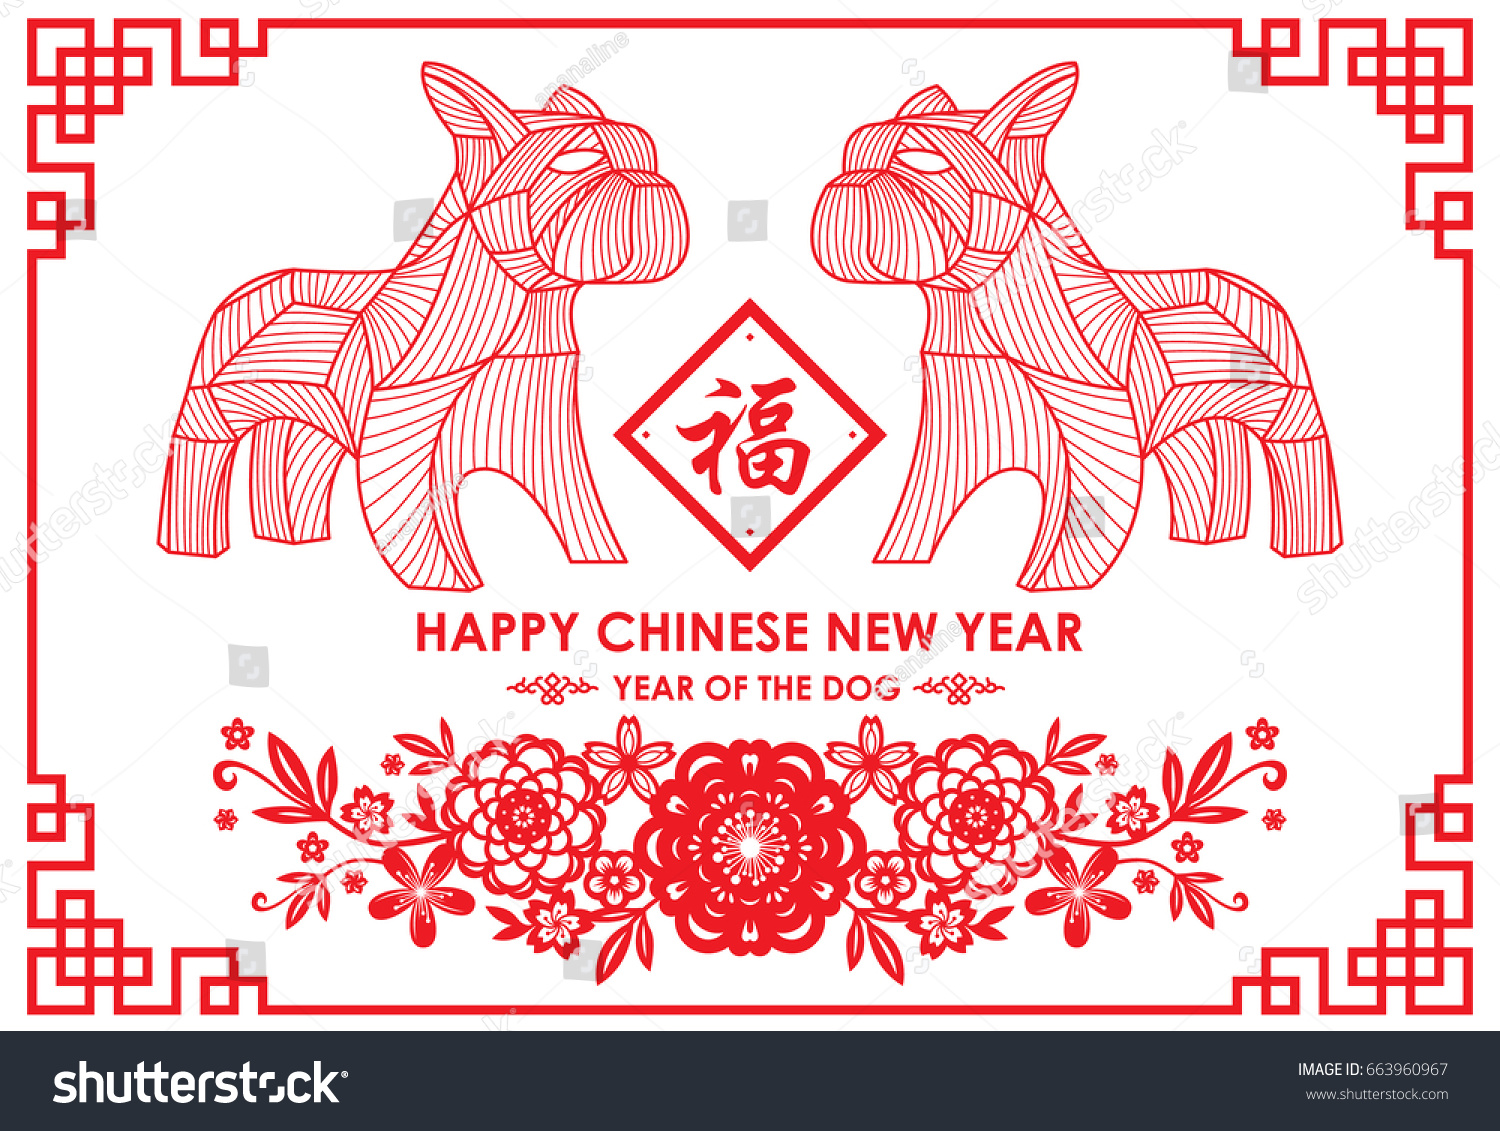 Happy chinese new year card line stock vector 663960967 shutterstock happy chinese new year card with line art dog zodiac and flowers paper cut on white kristyandbryce Choice Image